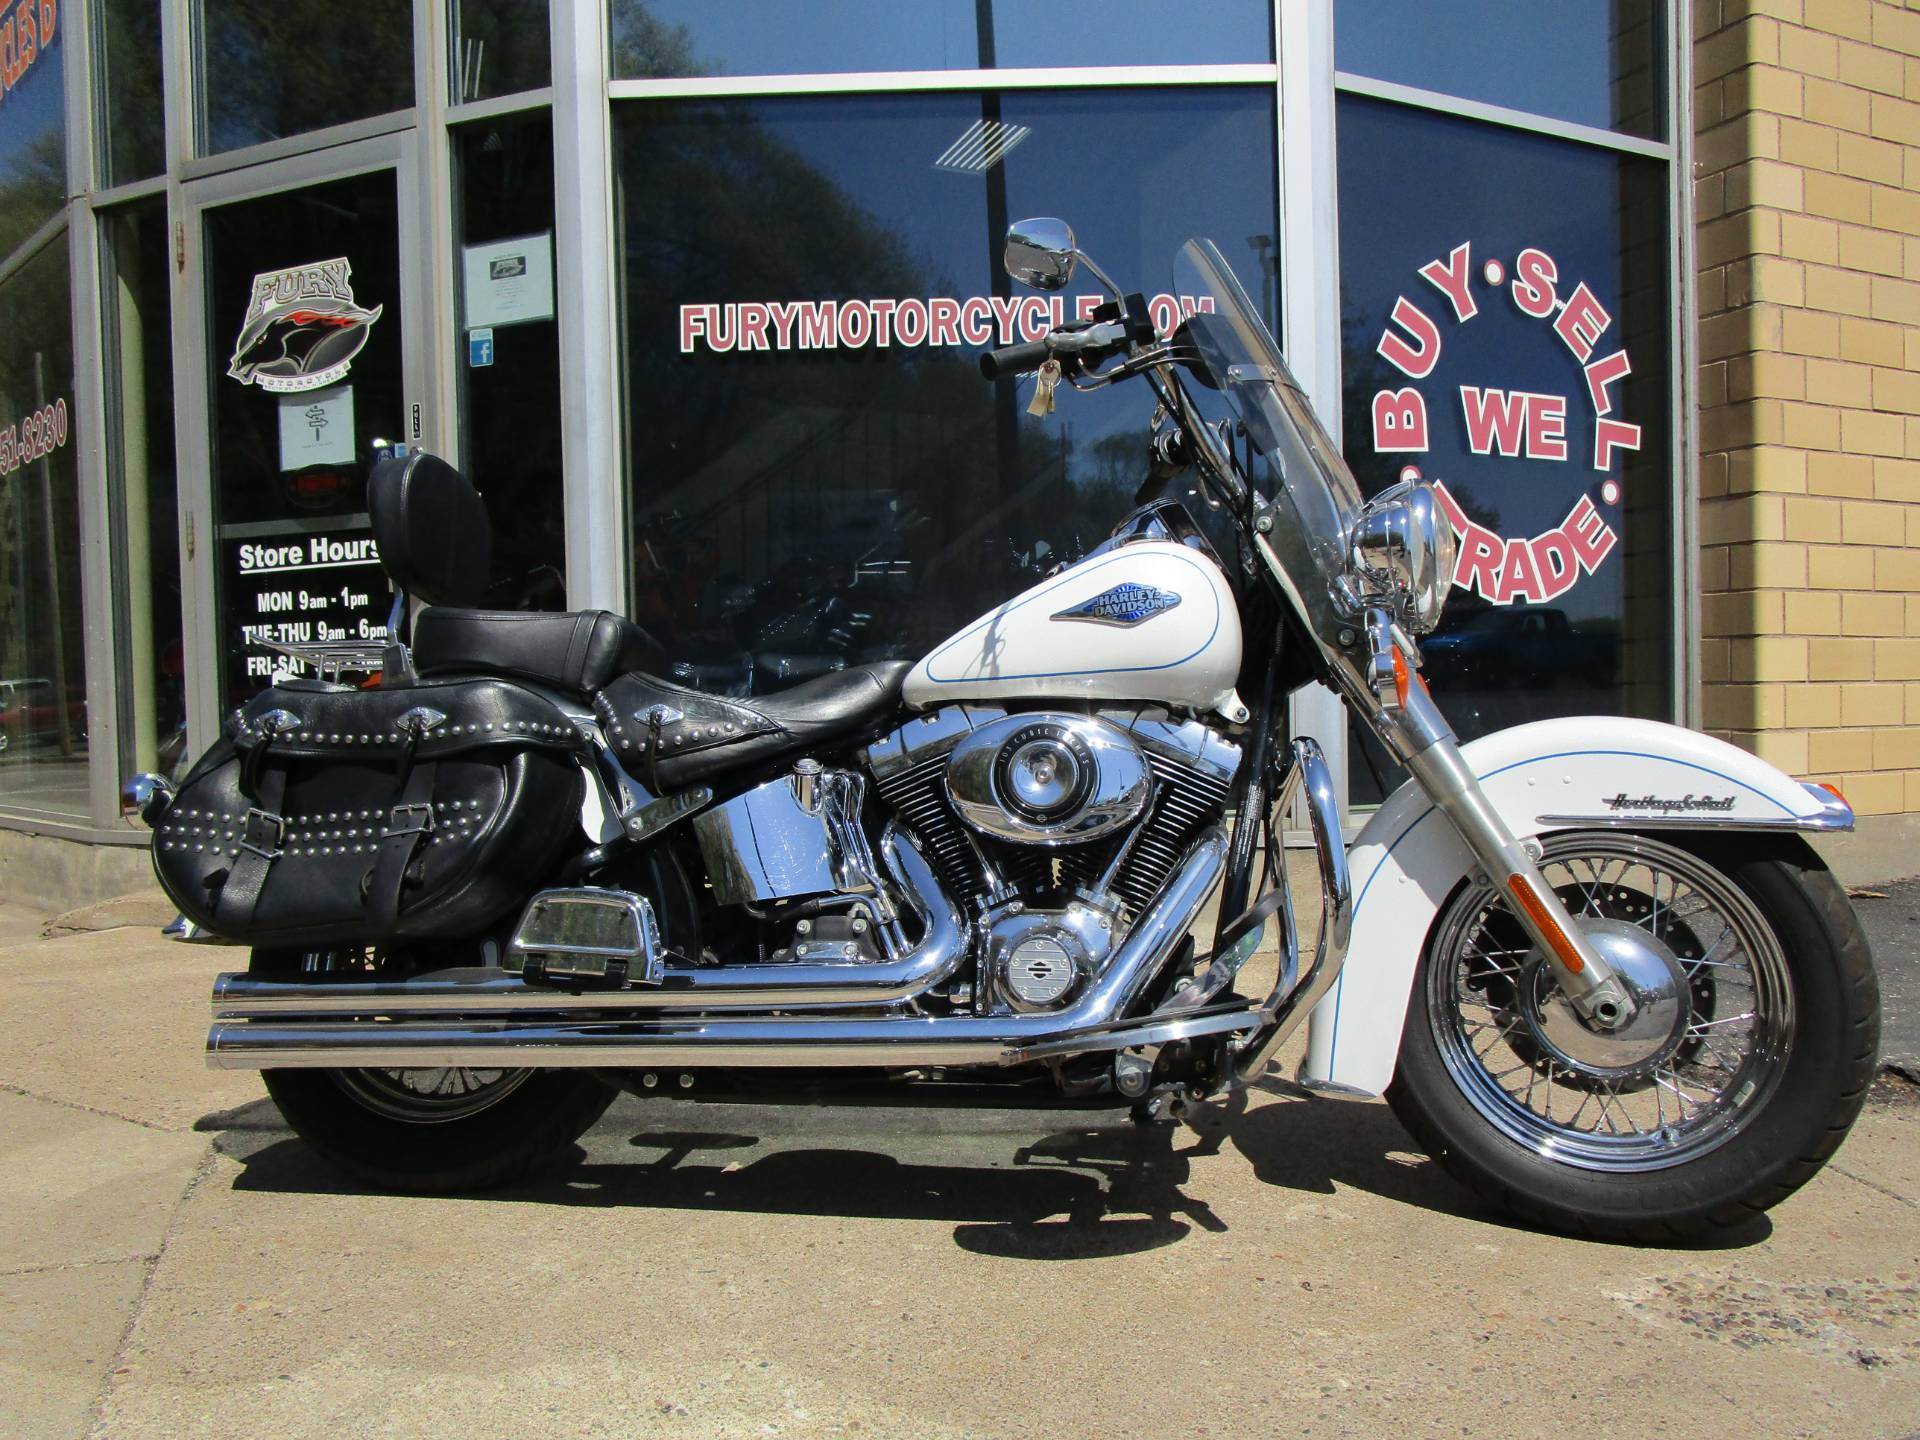 2013 Harley-Davidson Heritage Softail Classic for sale 6725